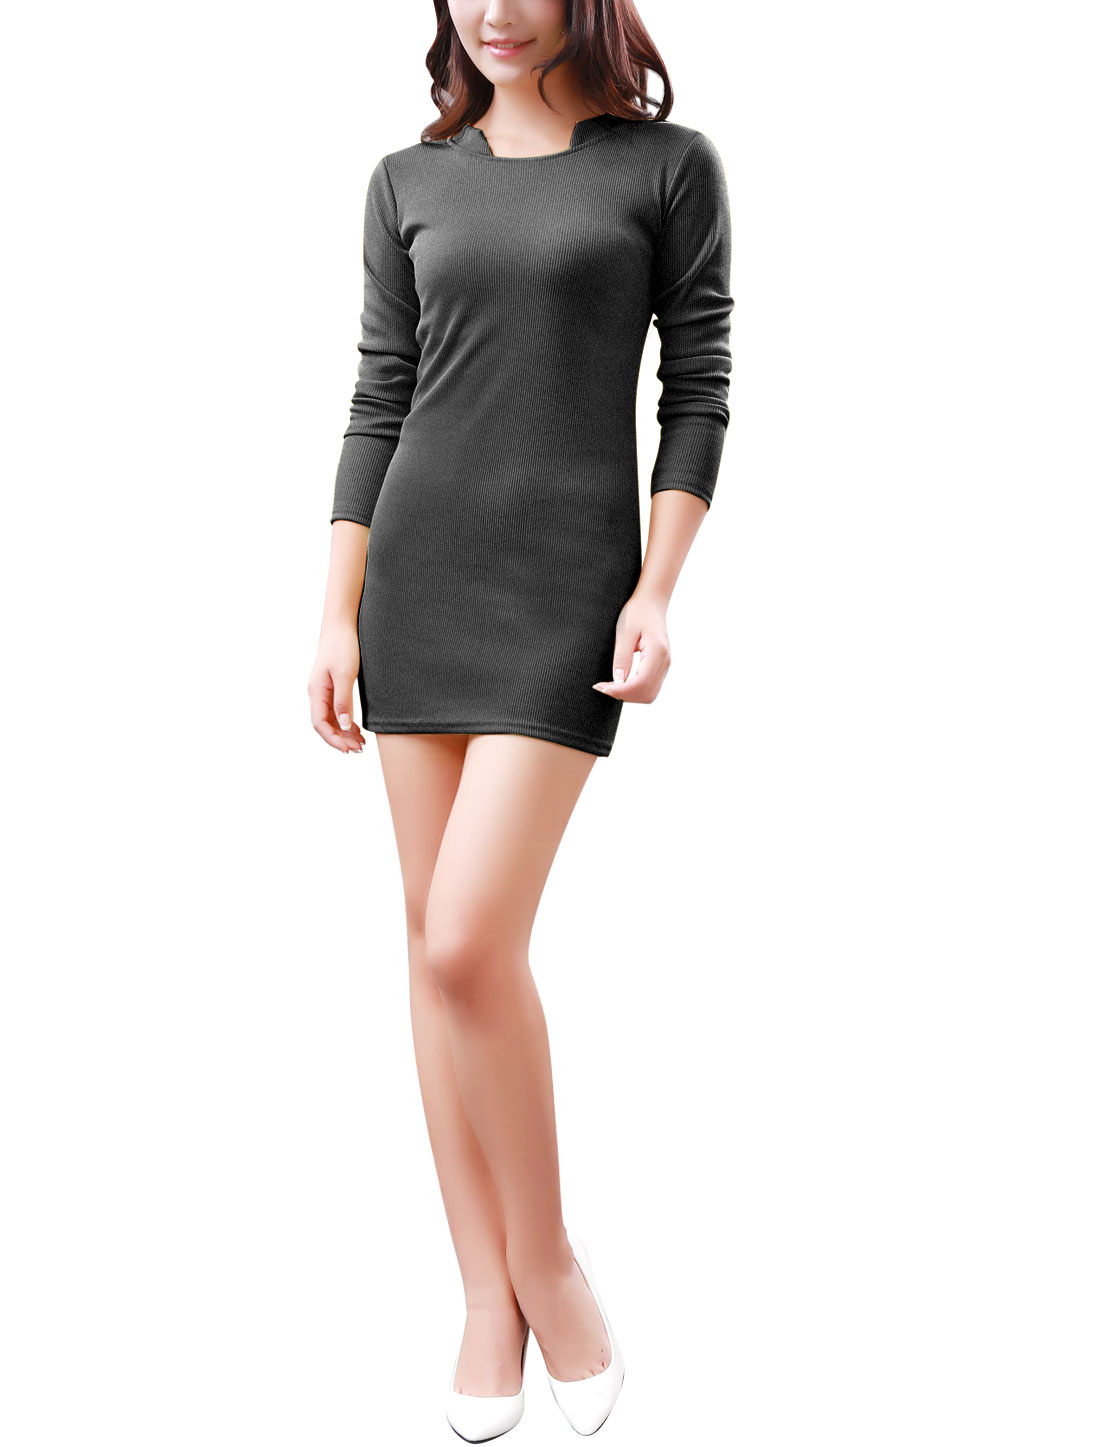 Women Stand Collar Long Sleeves Ribbing Trim Stretchy Knit Dress Dark Gray S